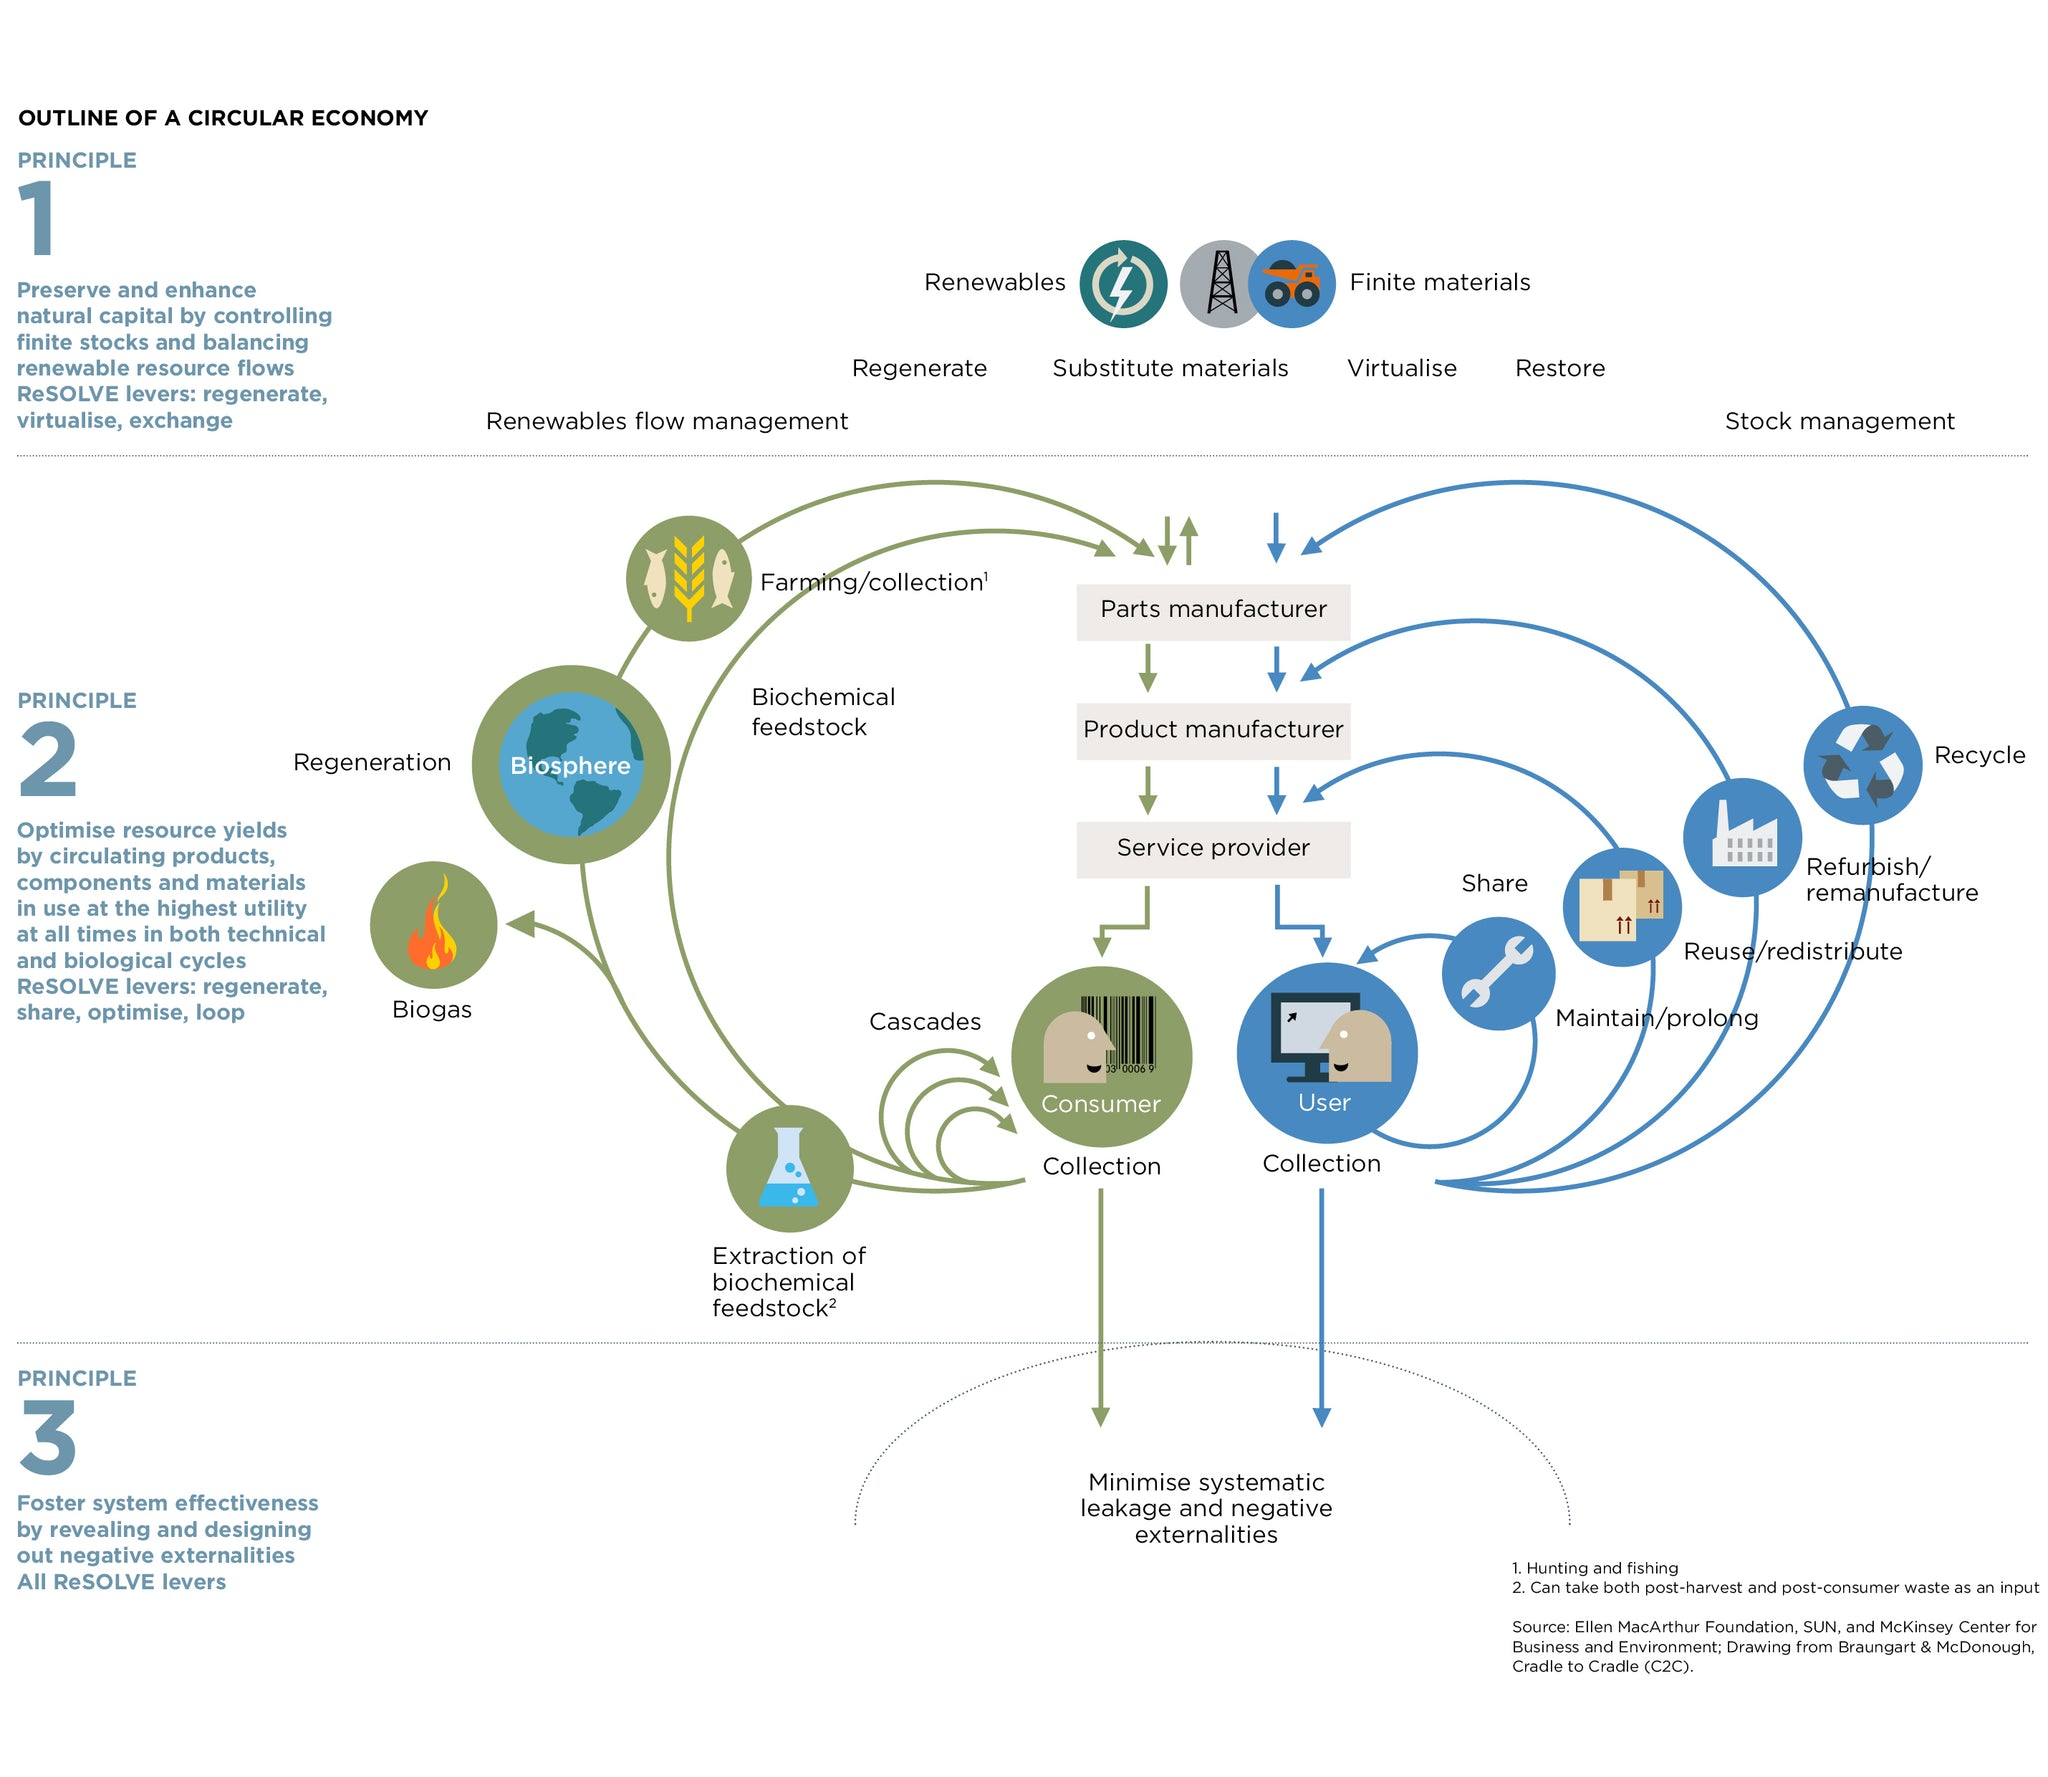 Re-think Progress: The Circular Economy